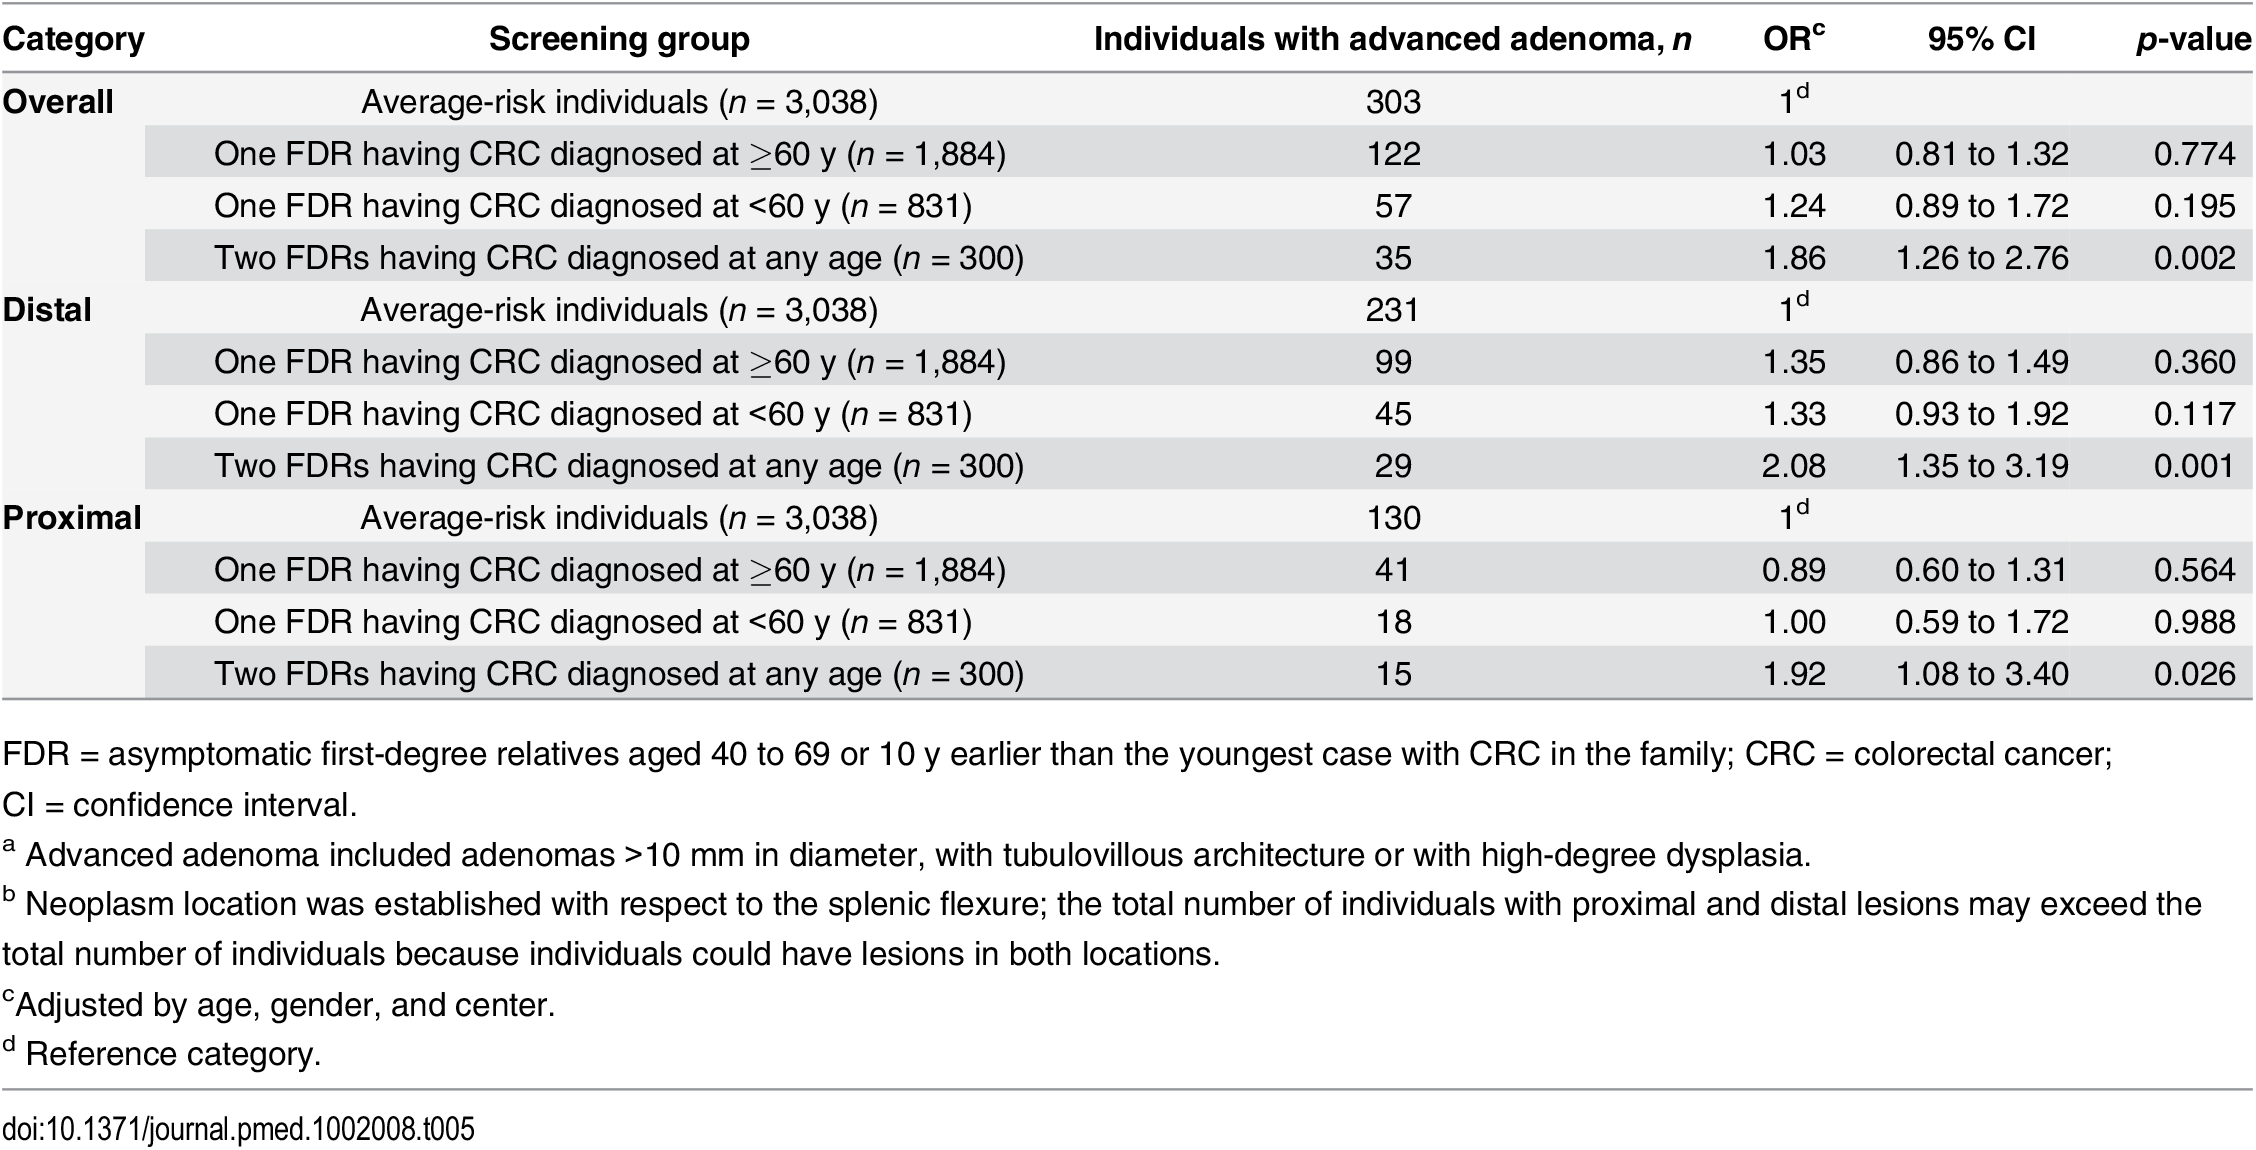 Risk of advanced adenoma<em class=&quot;ref&quot;><sup>a</sup></em> stratified by location of lesion<em class=&quot;ref&quot;><sup>b</sup></em>.